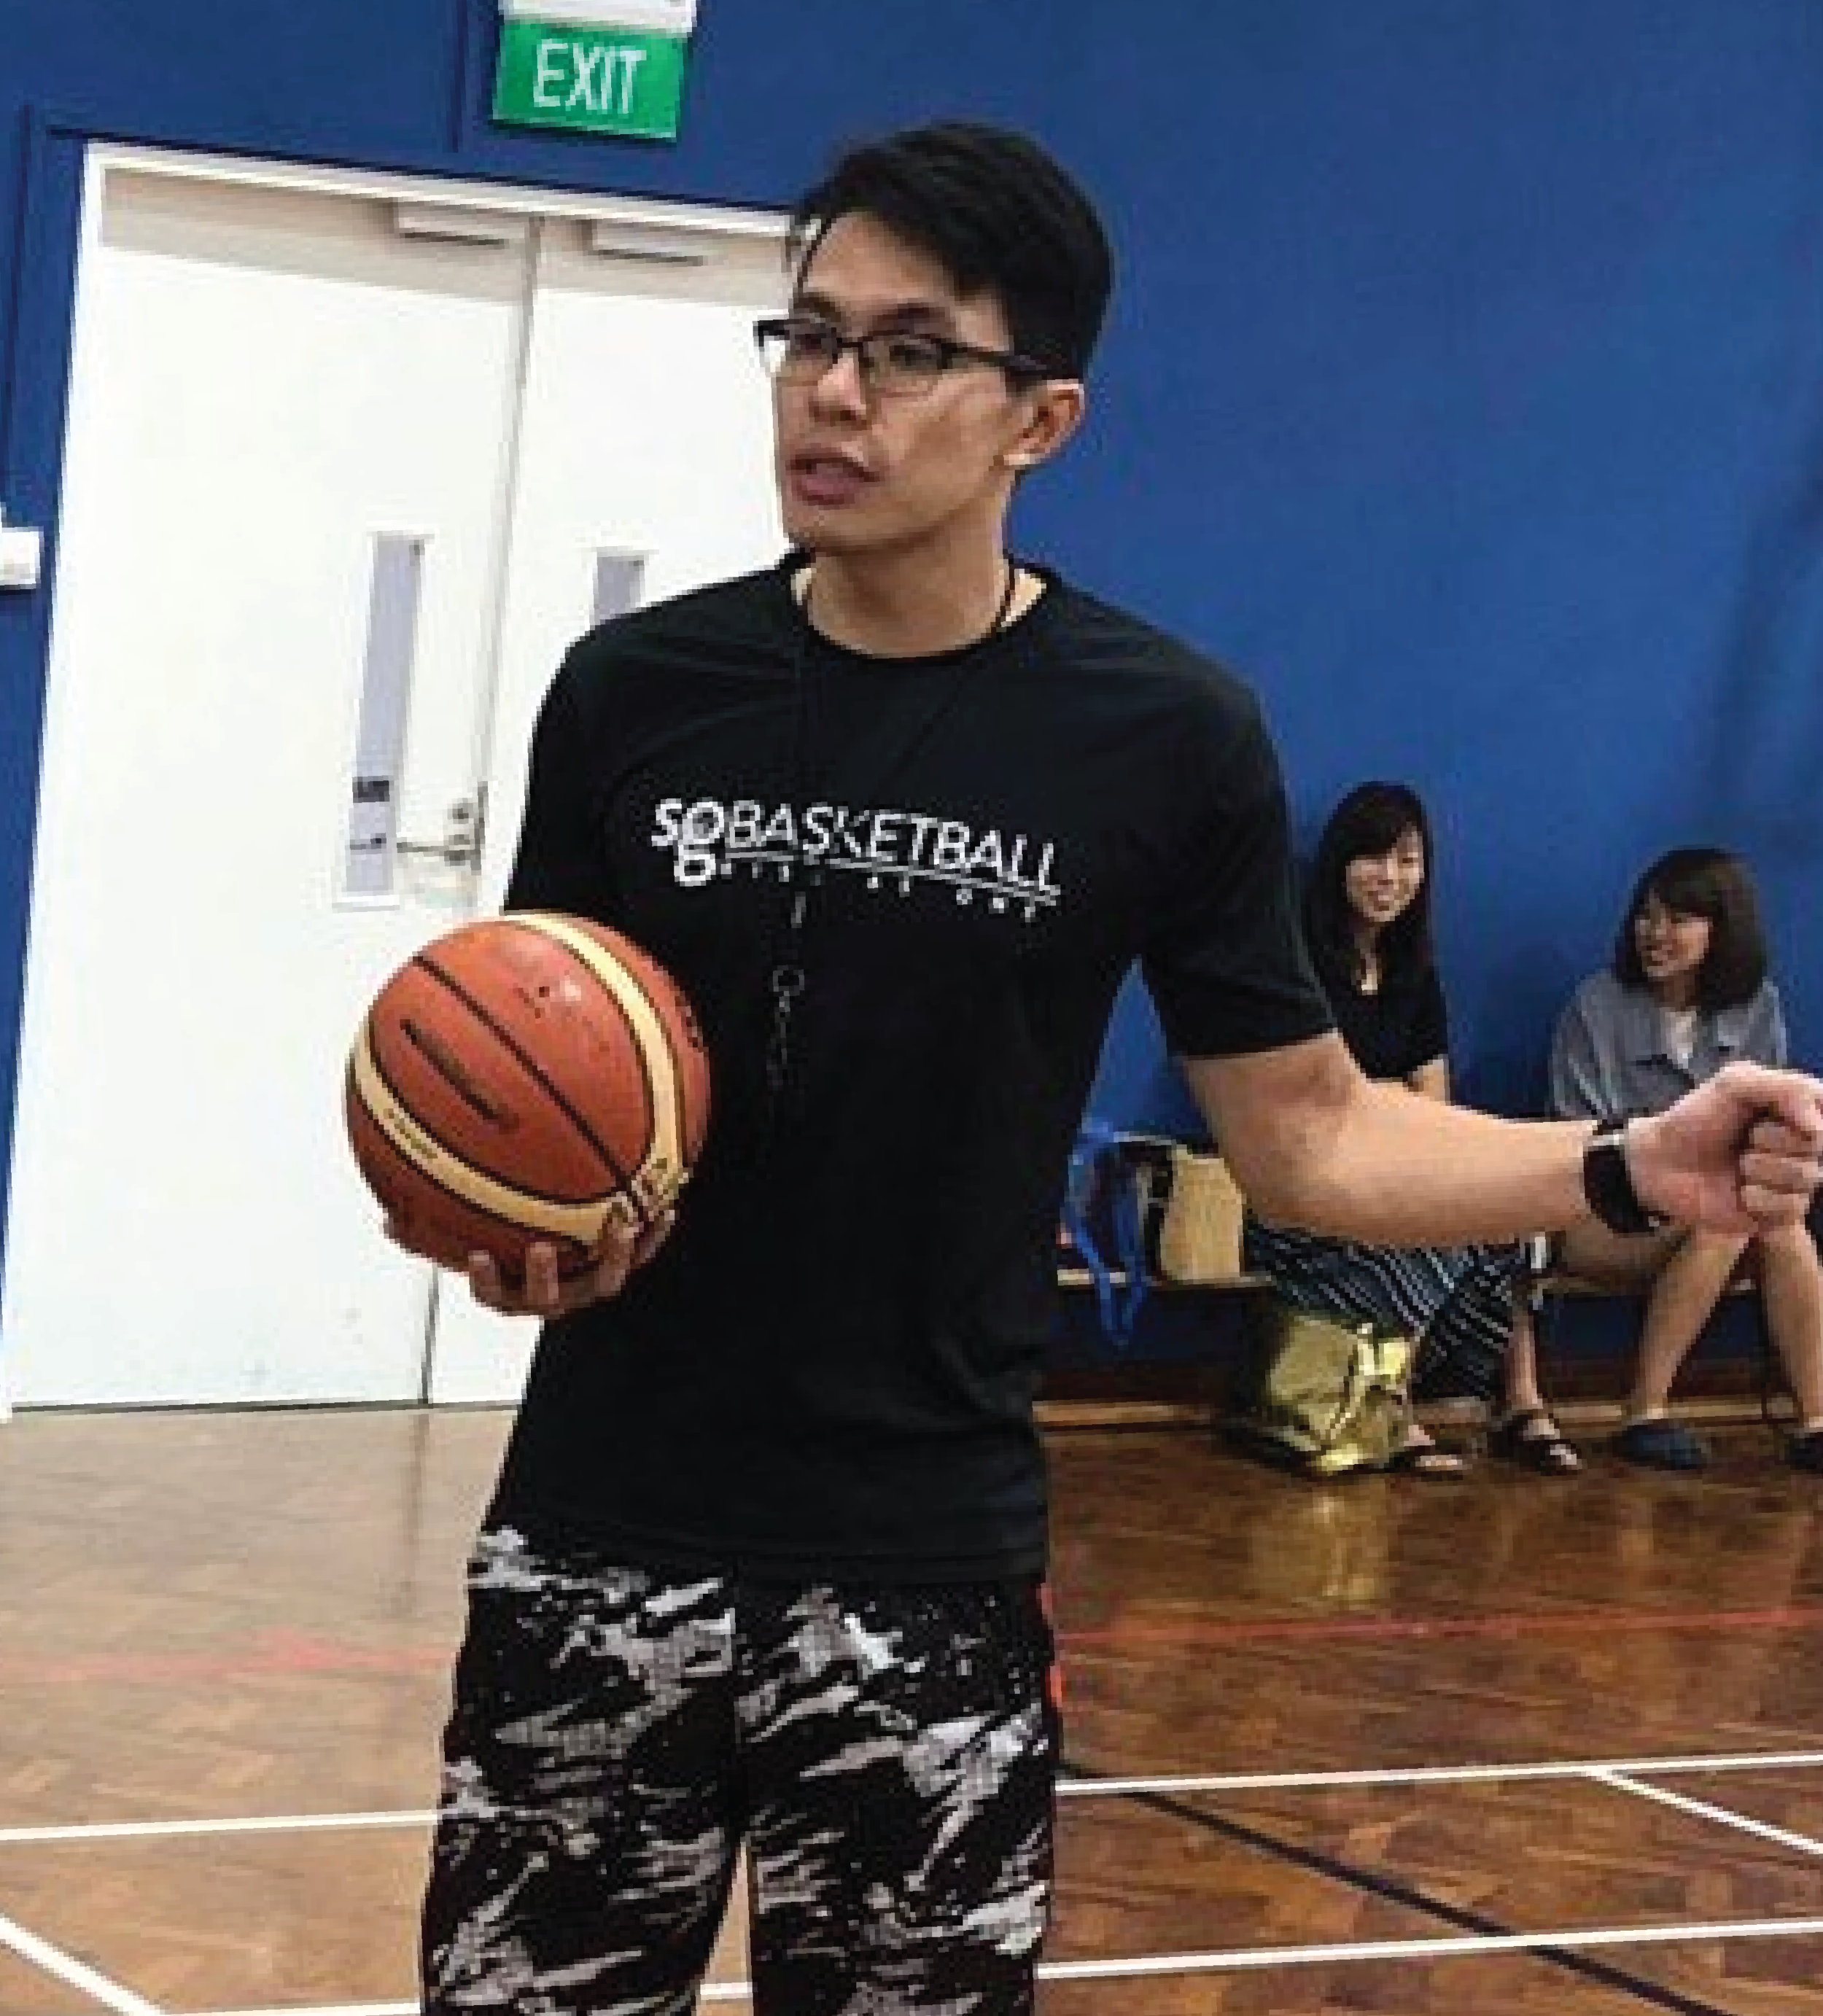 WEI RONG - Current Teams:Academy Coach, Tanglin Trust School, ISS Coach, Stingers U10 Boys.Playing Career: Secondary School team and Police team.Coaching experience: 2 years experience coaching competitive teams and skills camps.